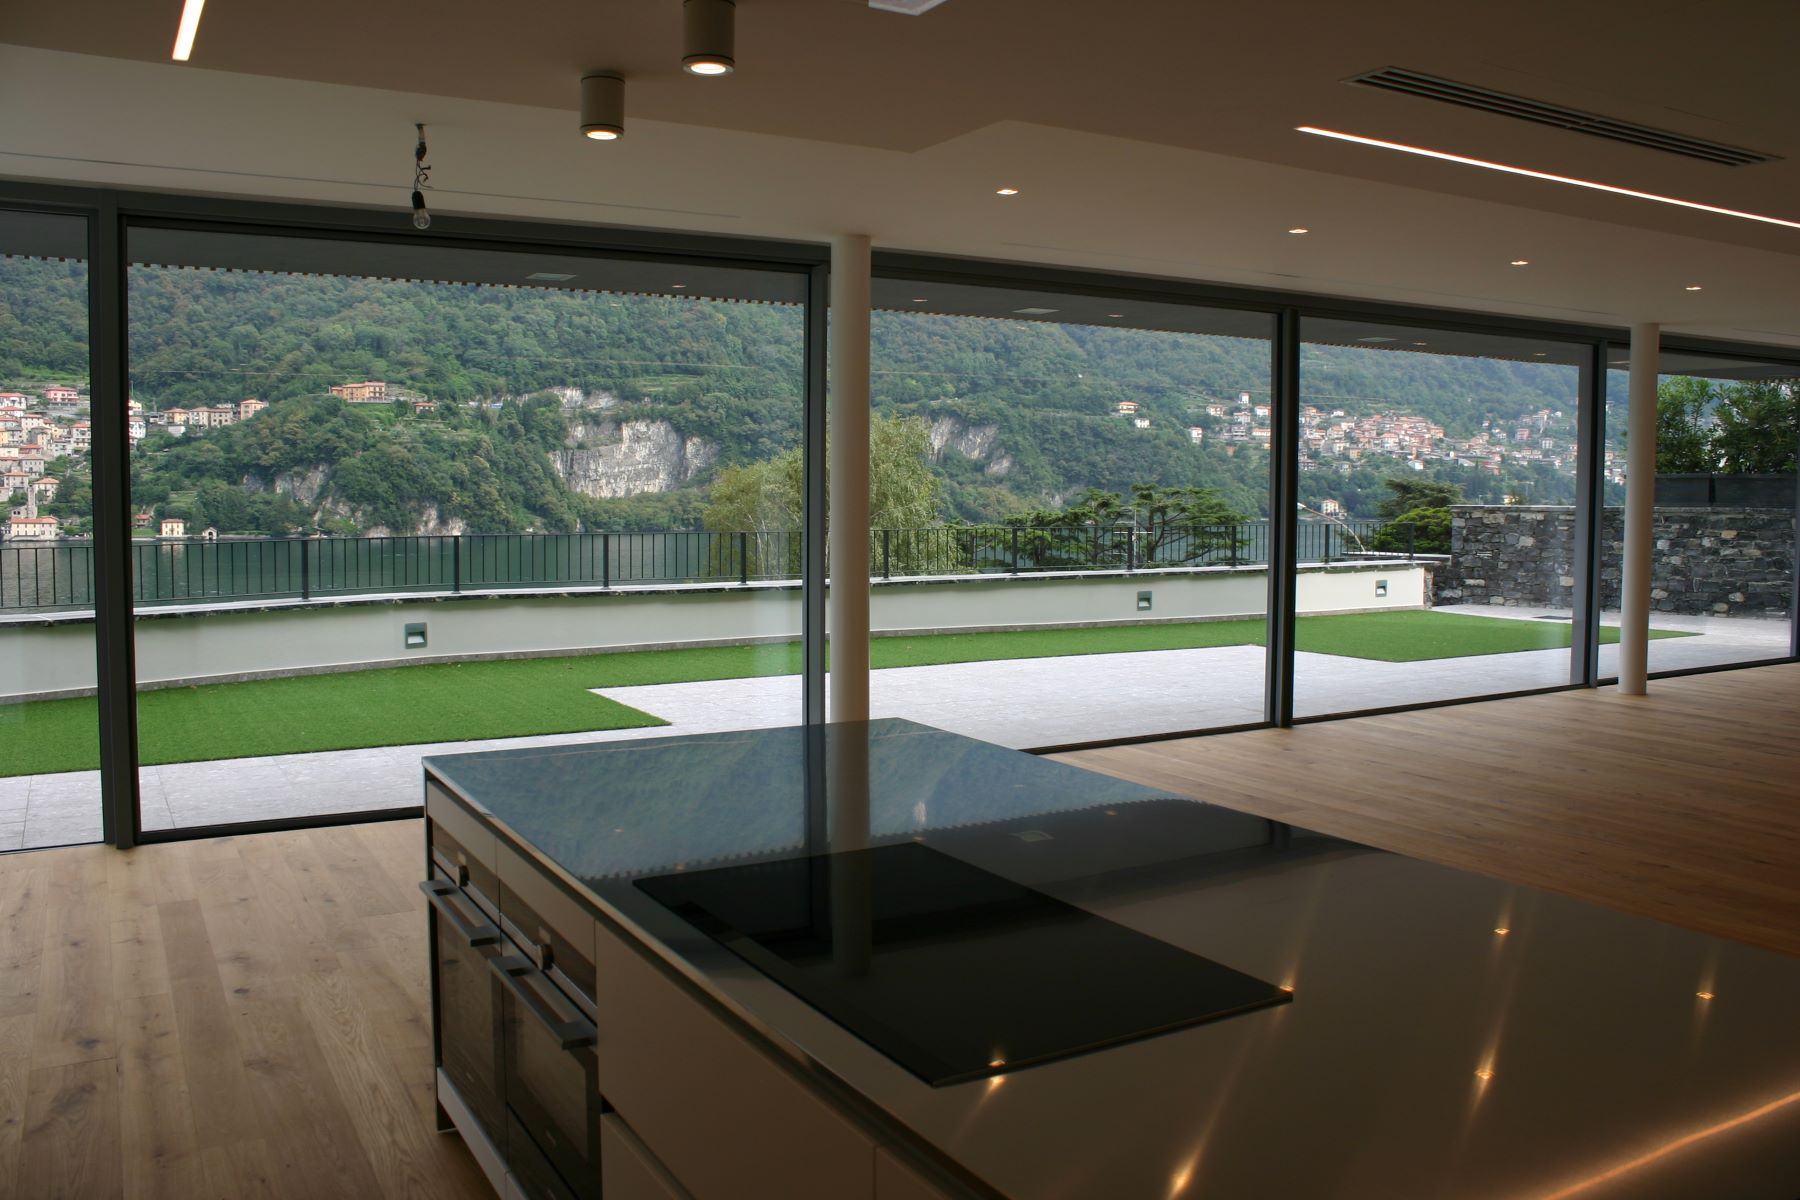 Additional photo for property listing at Prestigious modern villa with private swimming pool and magnificent Lake views Laglio Laglio, Como 22010 Italia